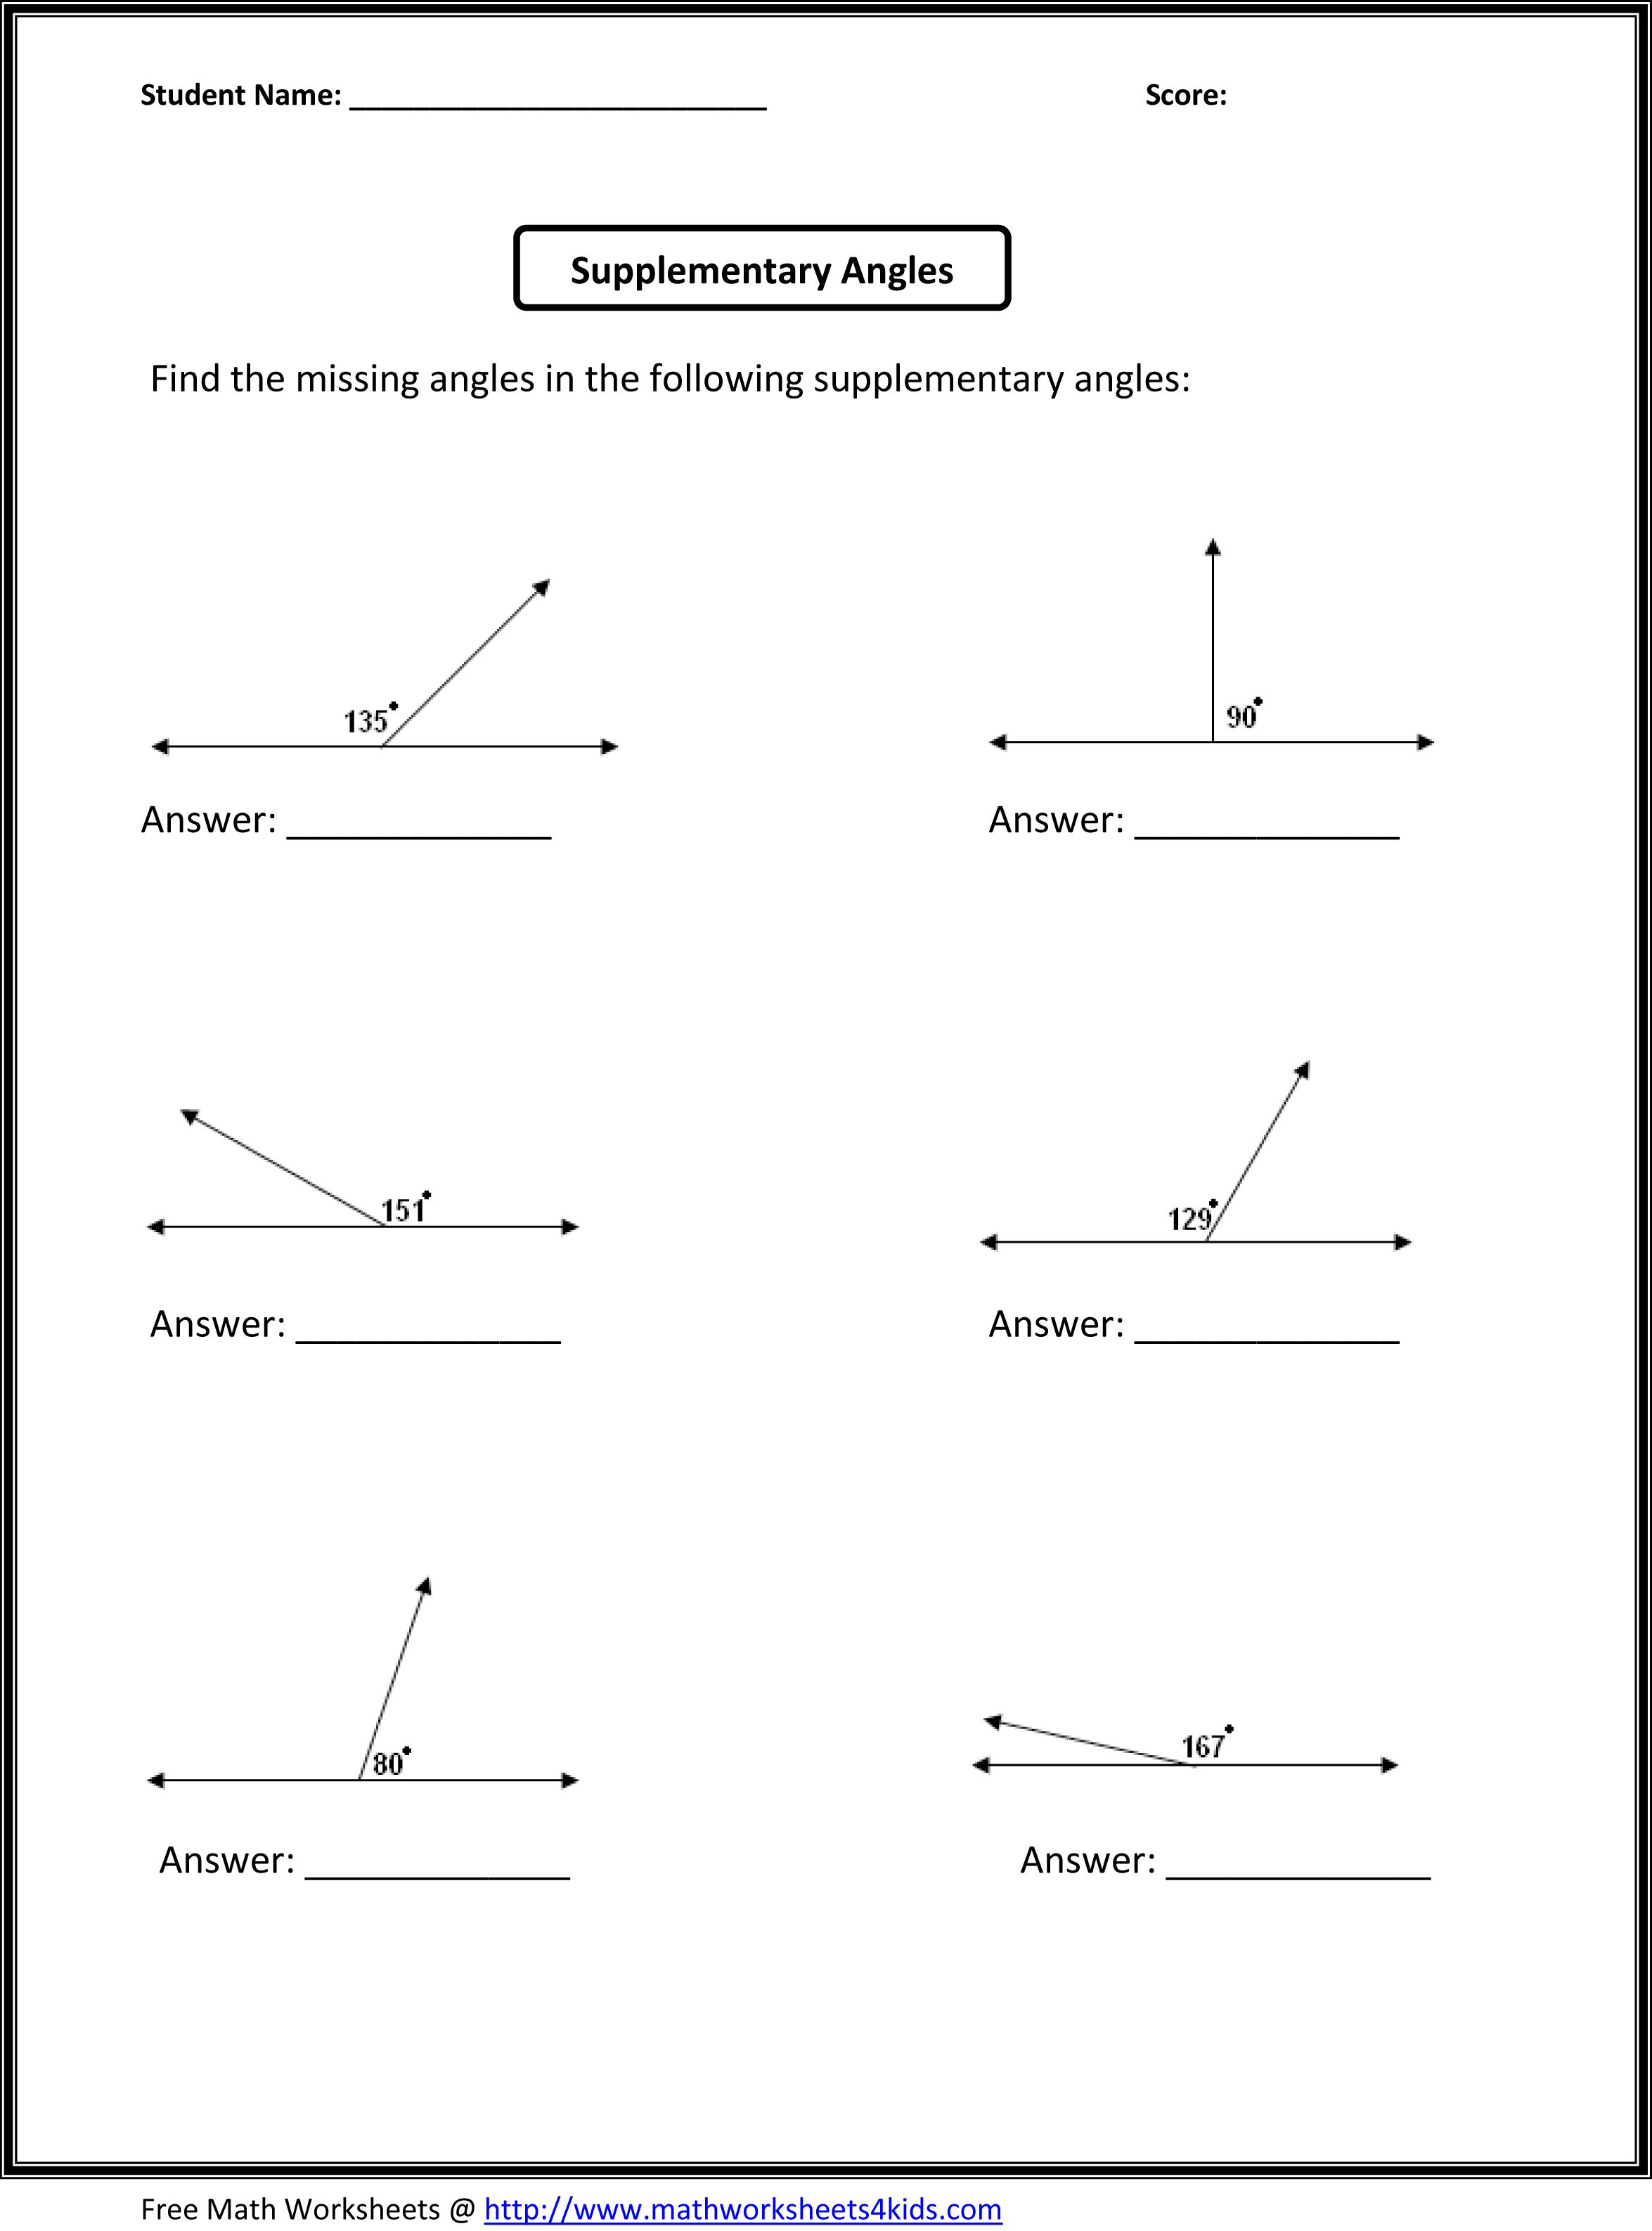 Worksheets Free Math Worksheets For 6th Grade supplementary angles classroom madness pinterest math sixth grade worksheets